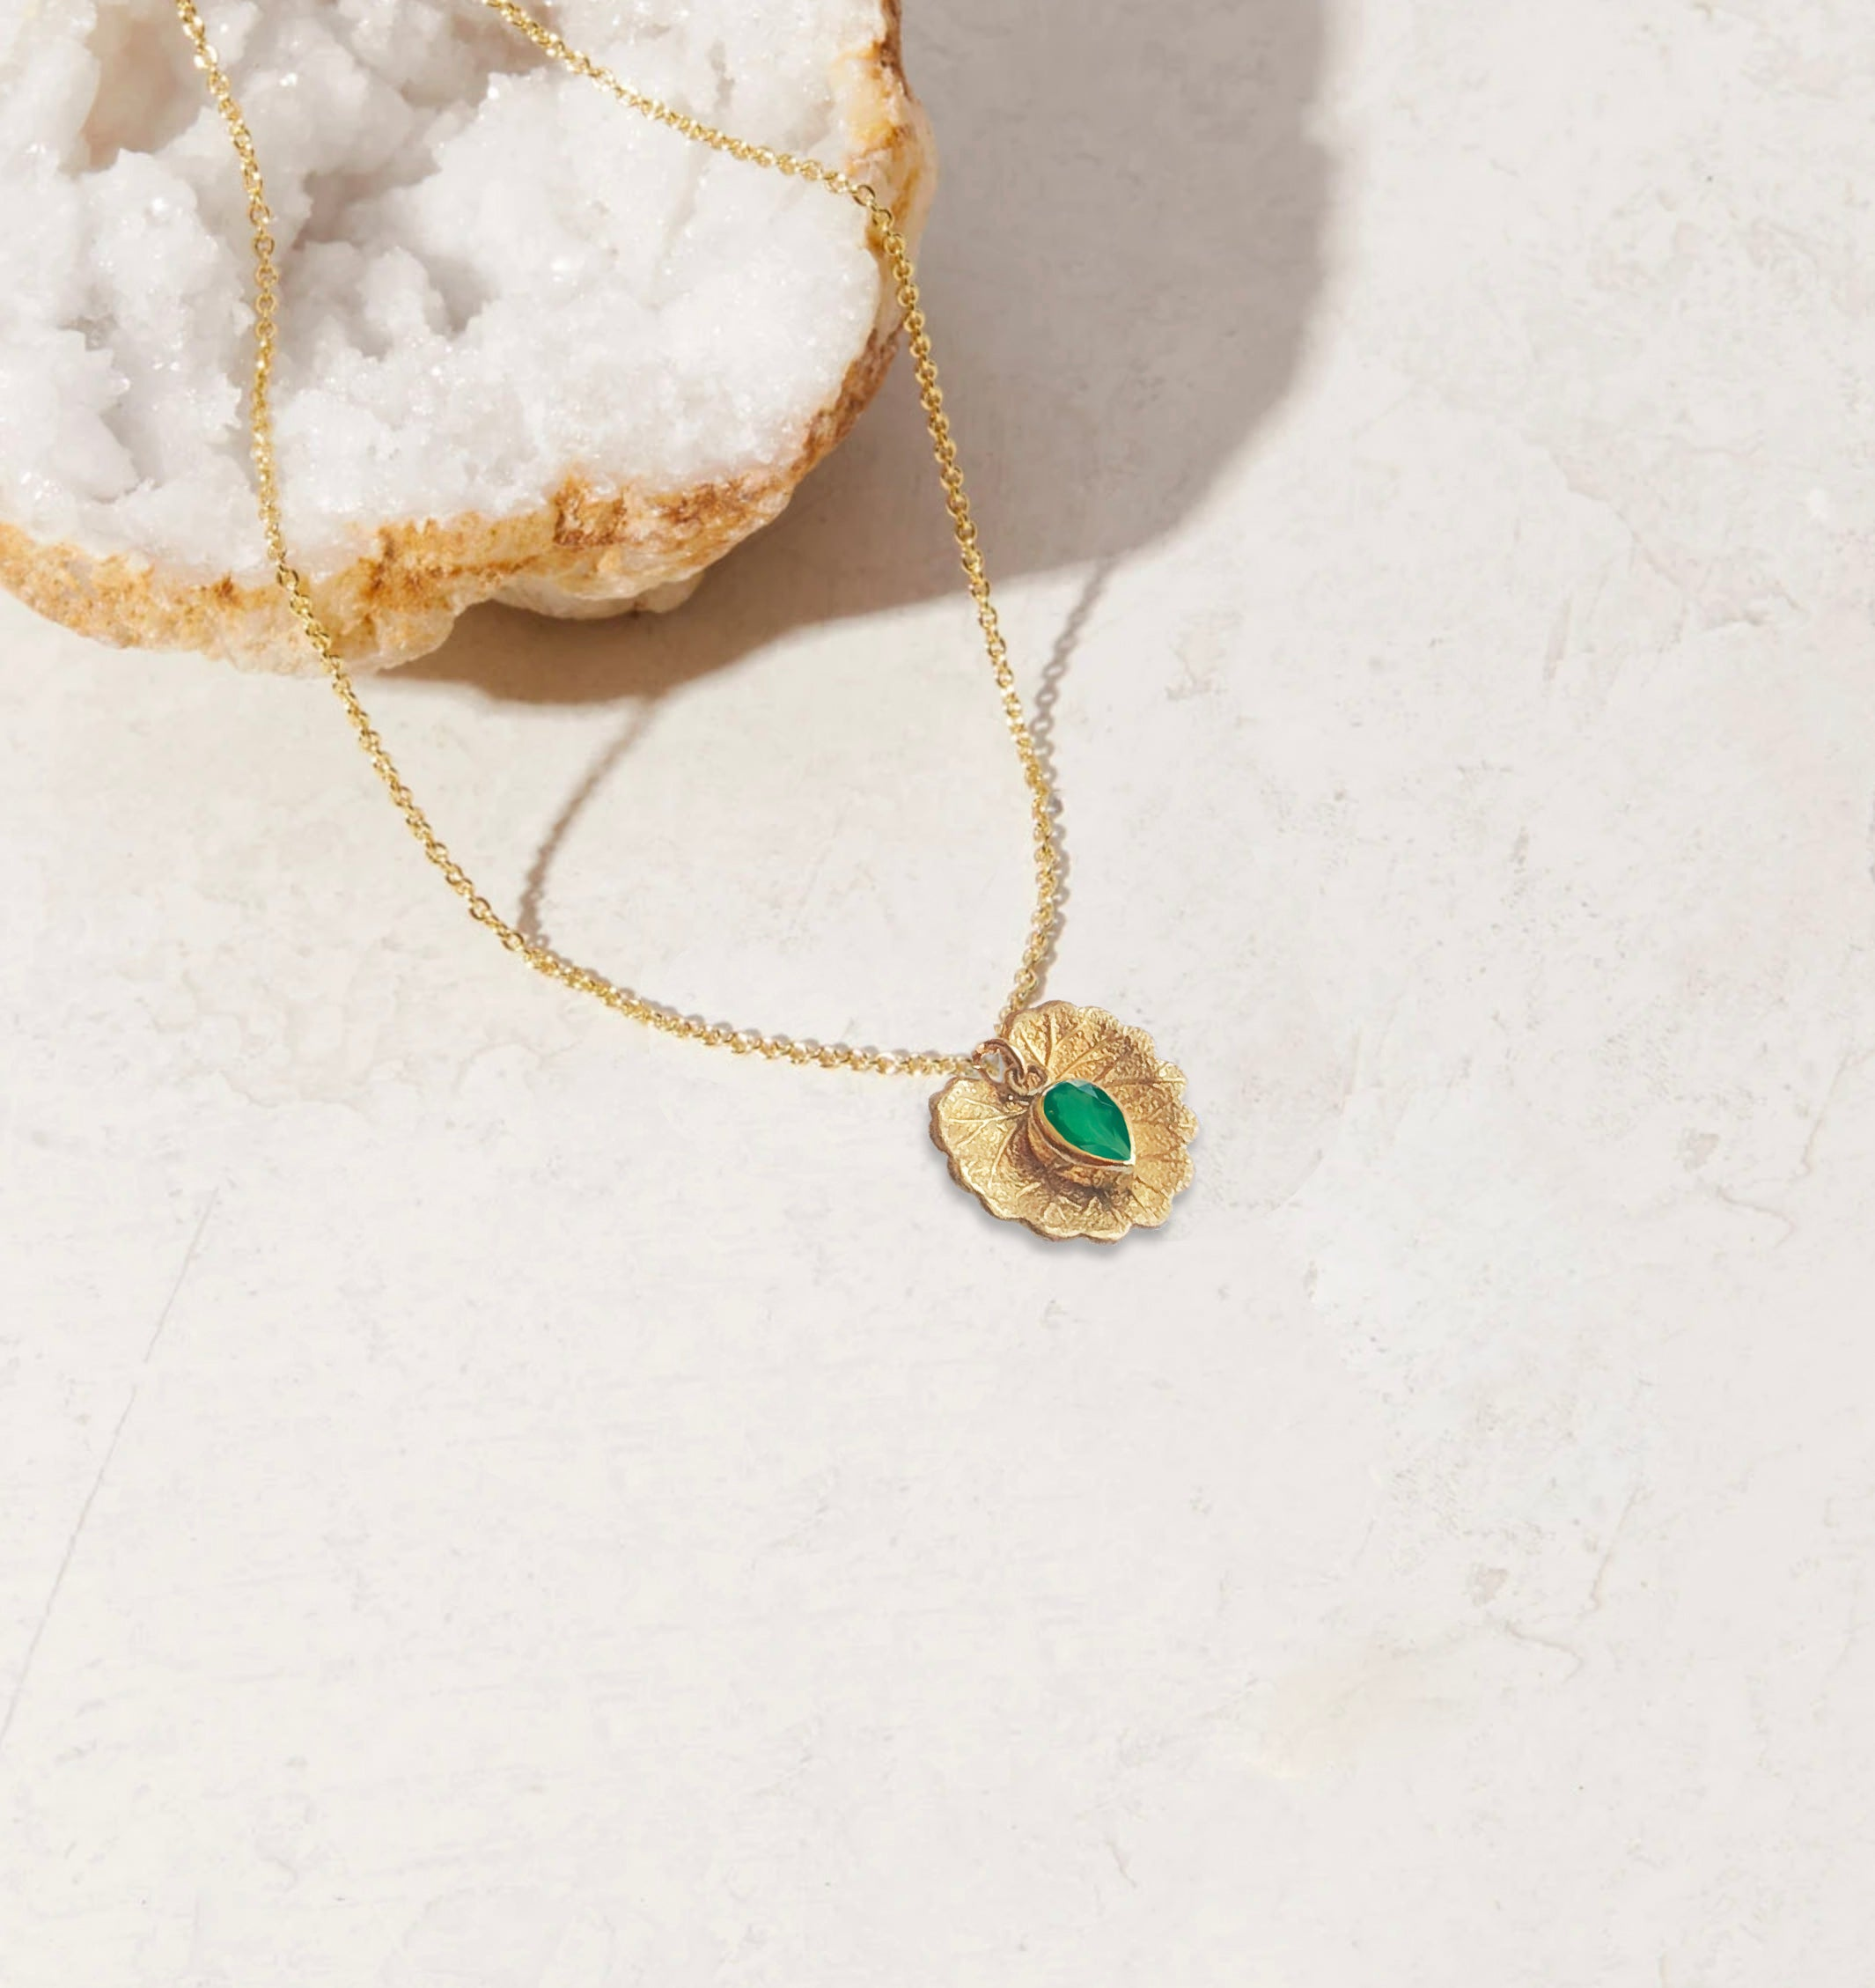 EMERALD PERFUME WITH NECKLACE | May